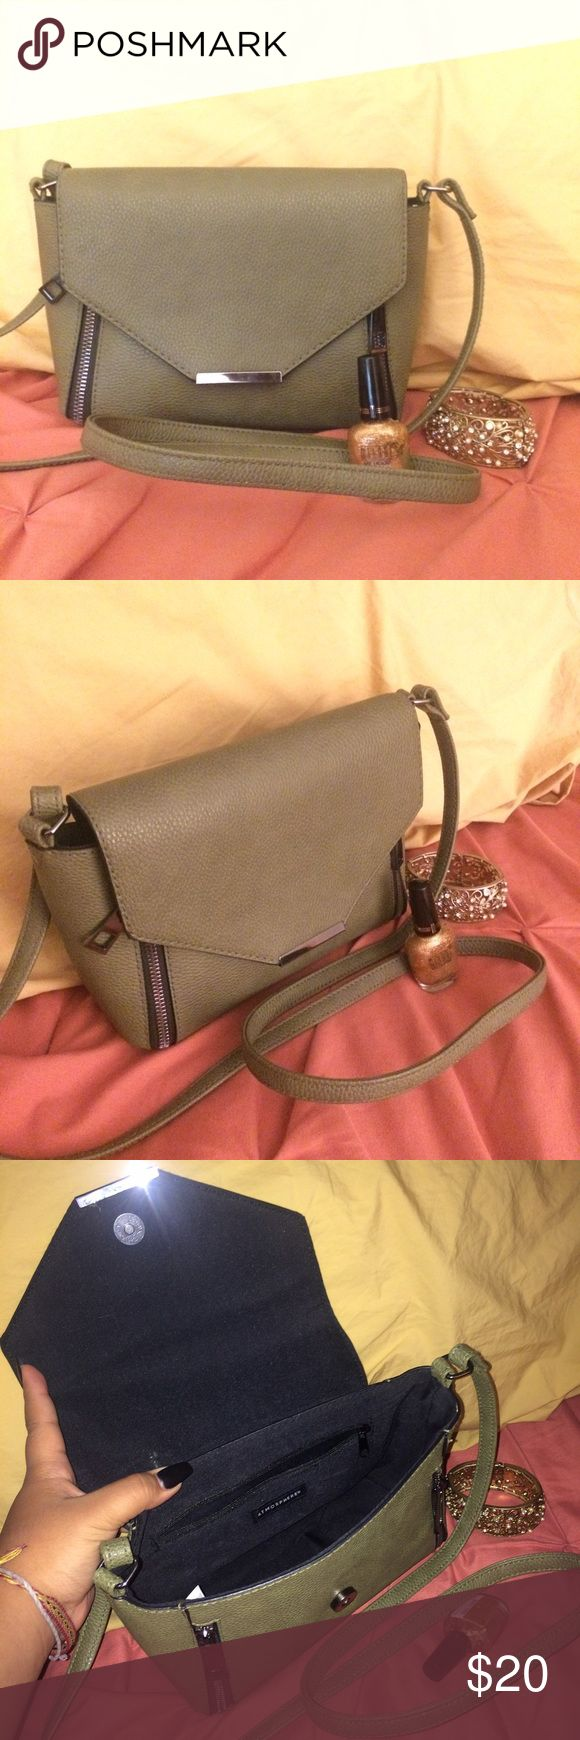 Olive Green Small Hand Bag Primark Bag perfect for fall Forever 21 Bags Crossbody Bags